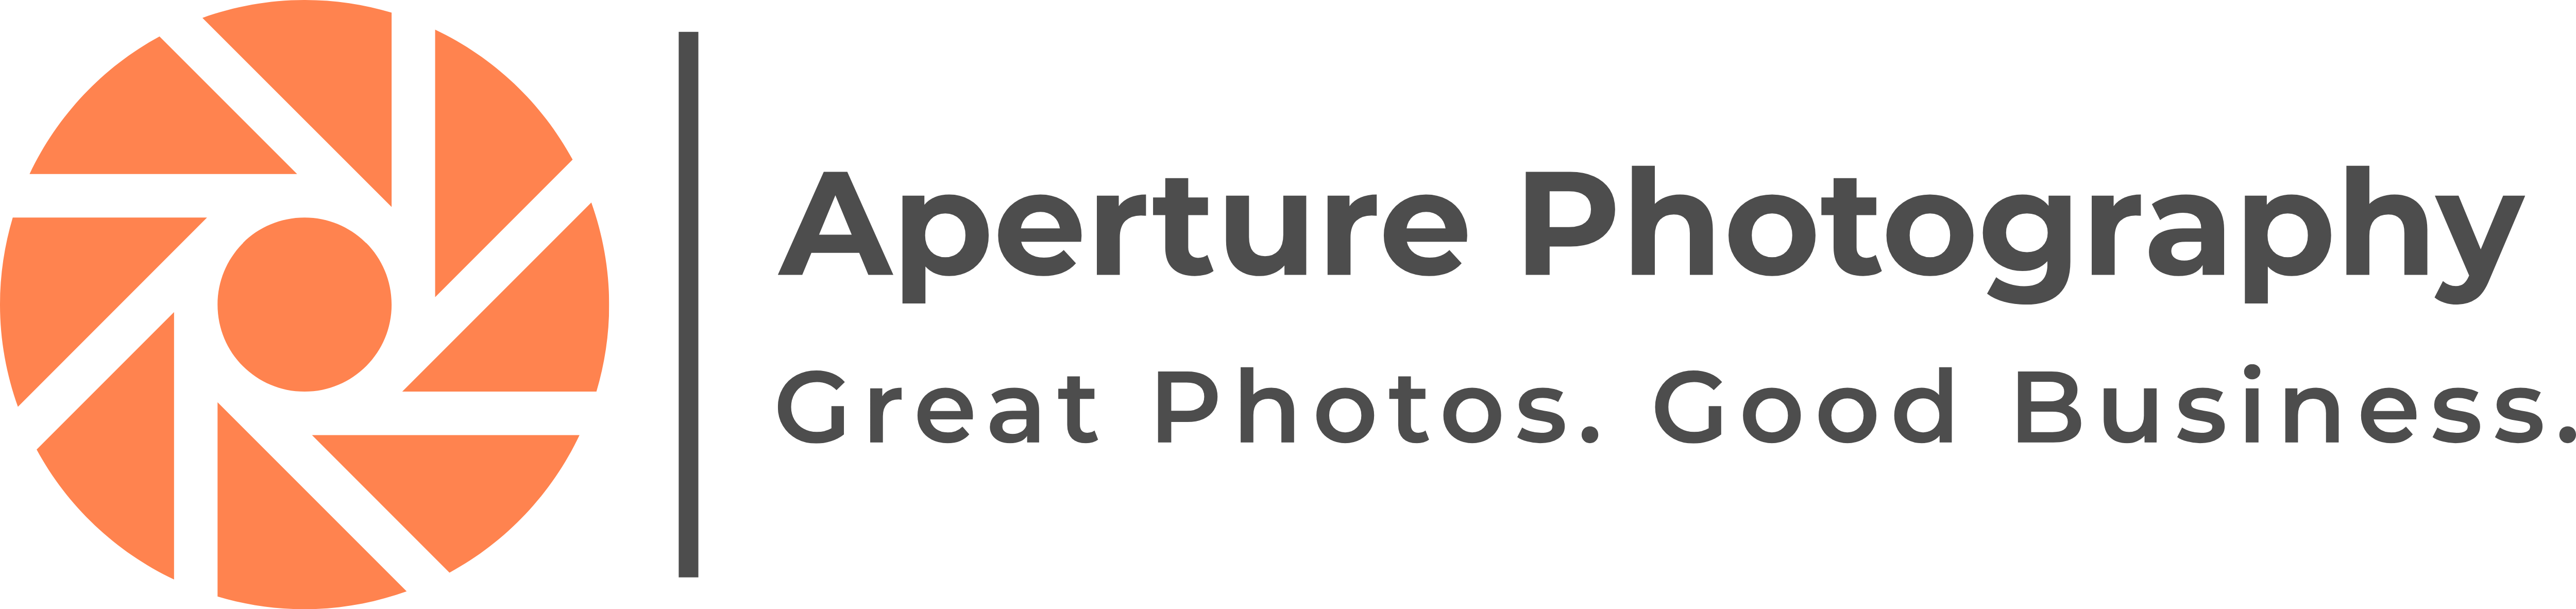 Aperture Photography Services floor plan in West Vancouver